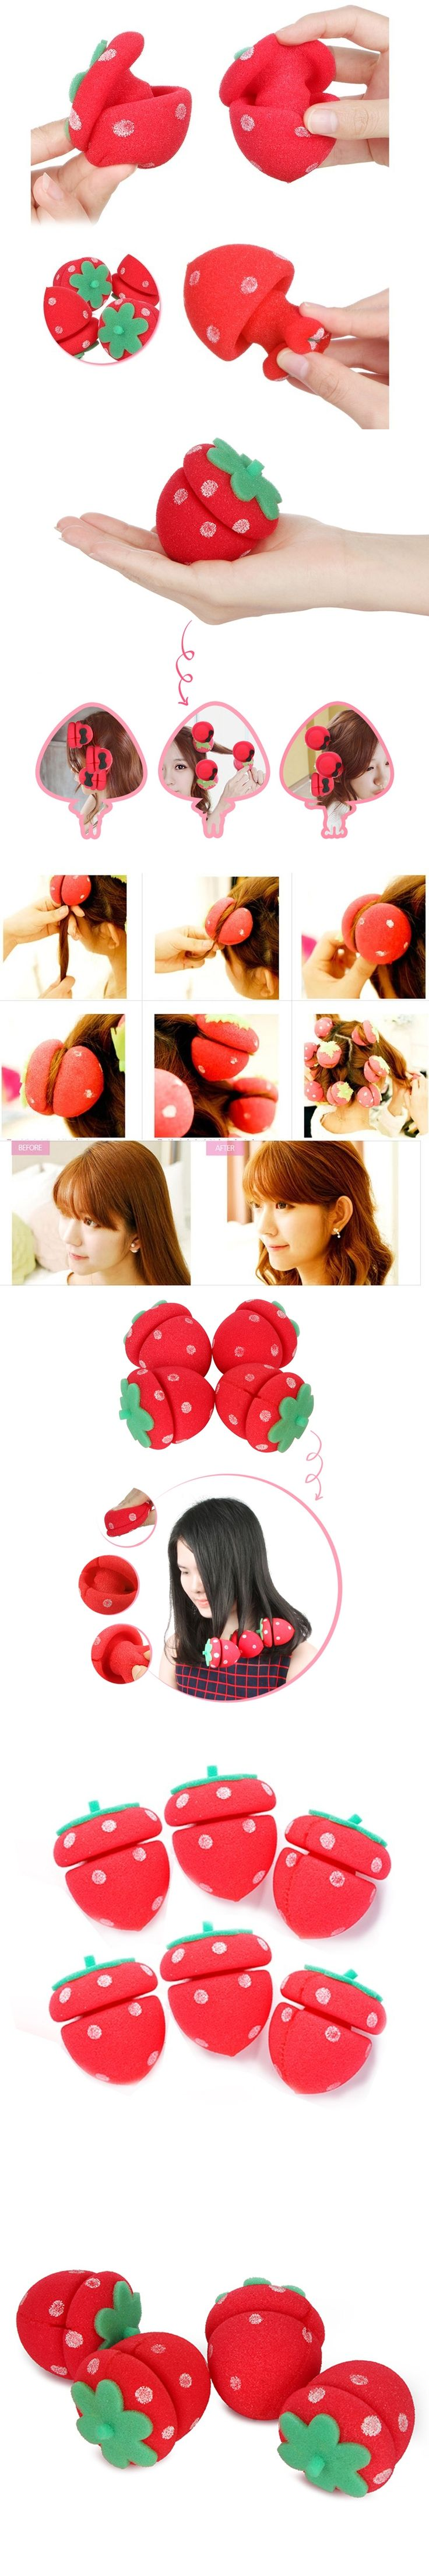 6Pcs/Set Lovely Curling Hair Foam Rollers Hair Curler Rolls Twists Strawberry Balls Sponge DIY Hairstyle Hair Care Styling Tools